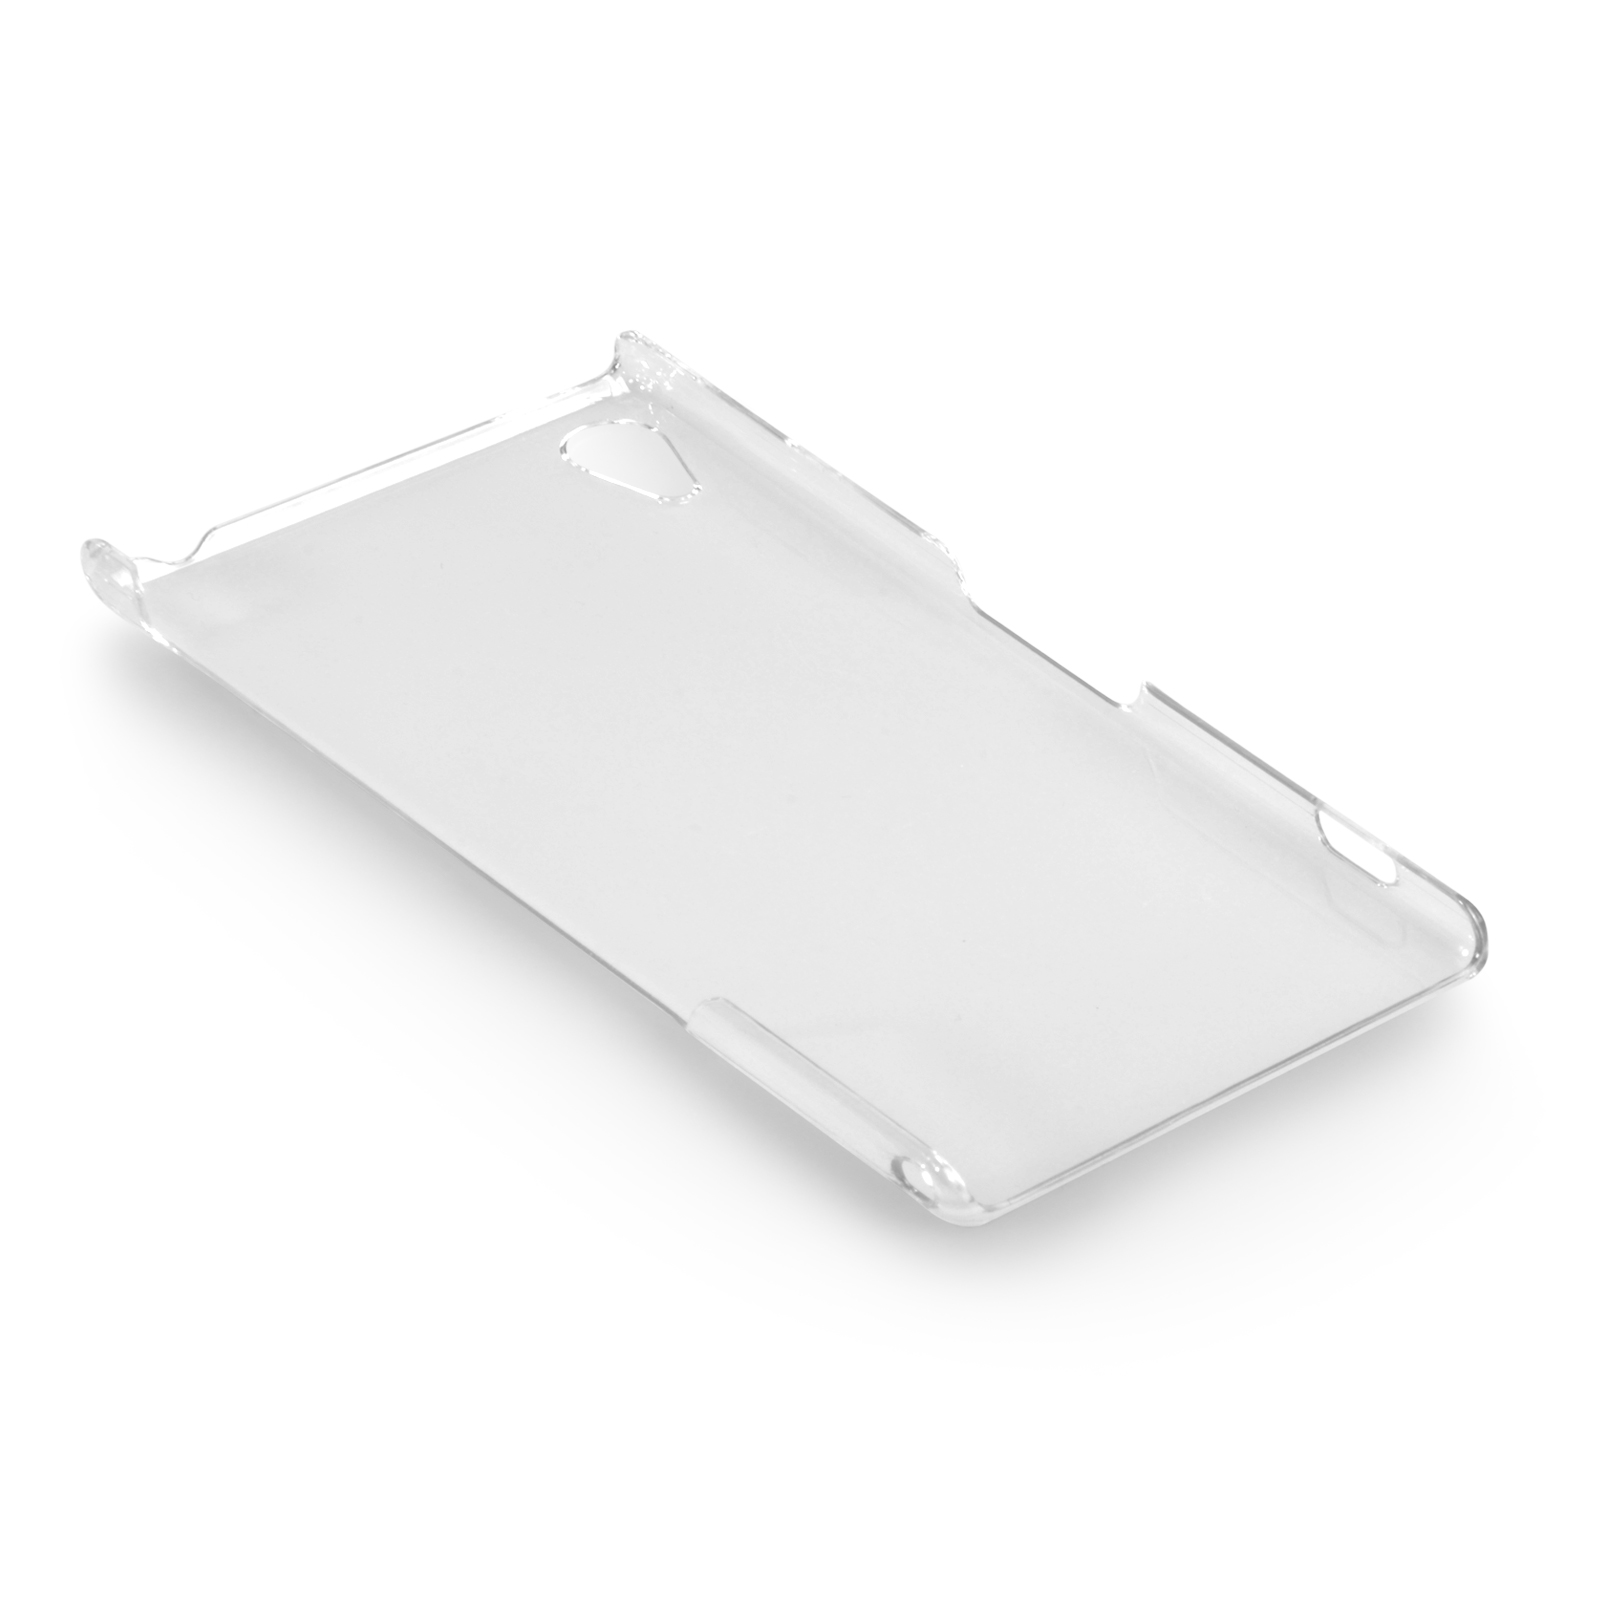 YouSave Accessories Sony Xperia Z2 Hard Case - Crystal Clear